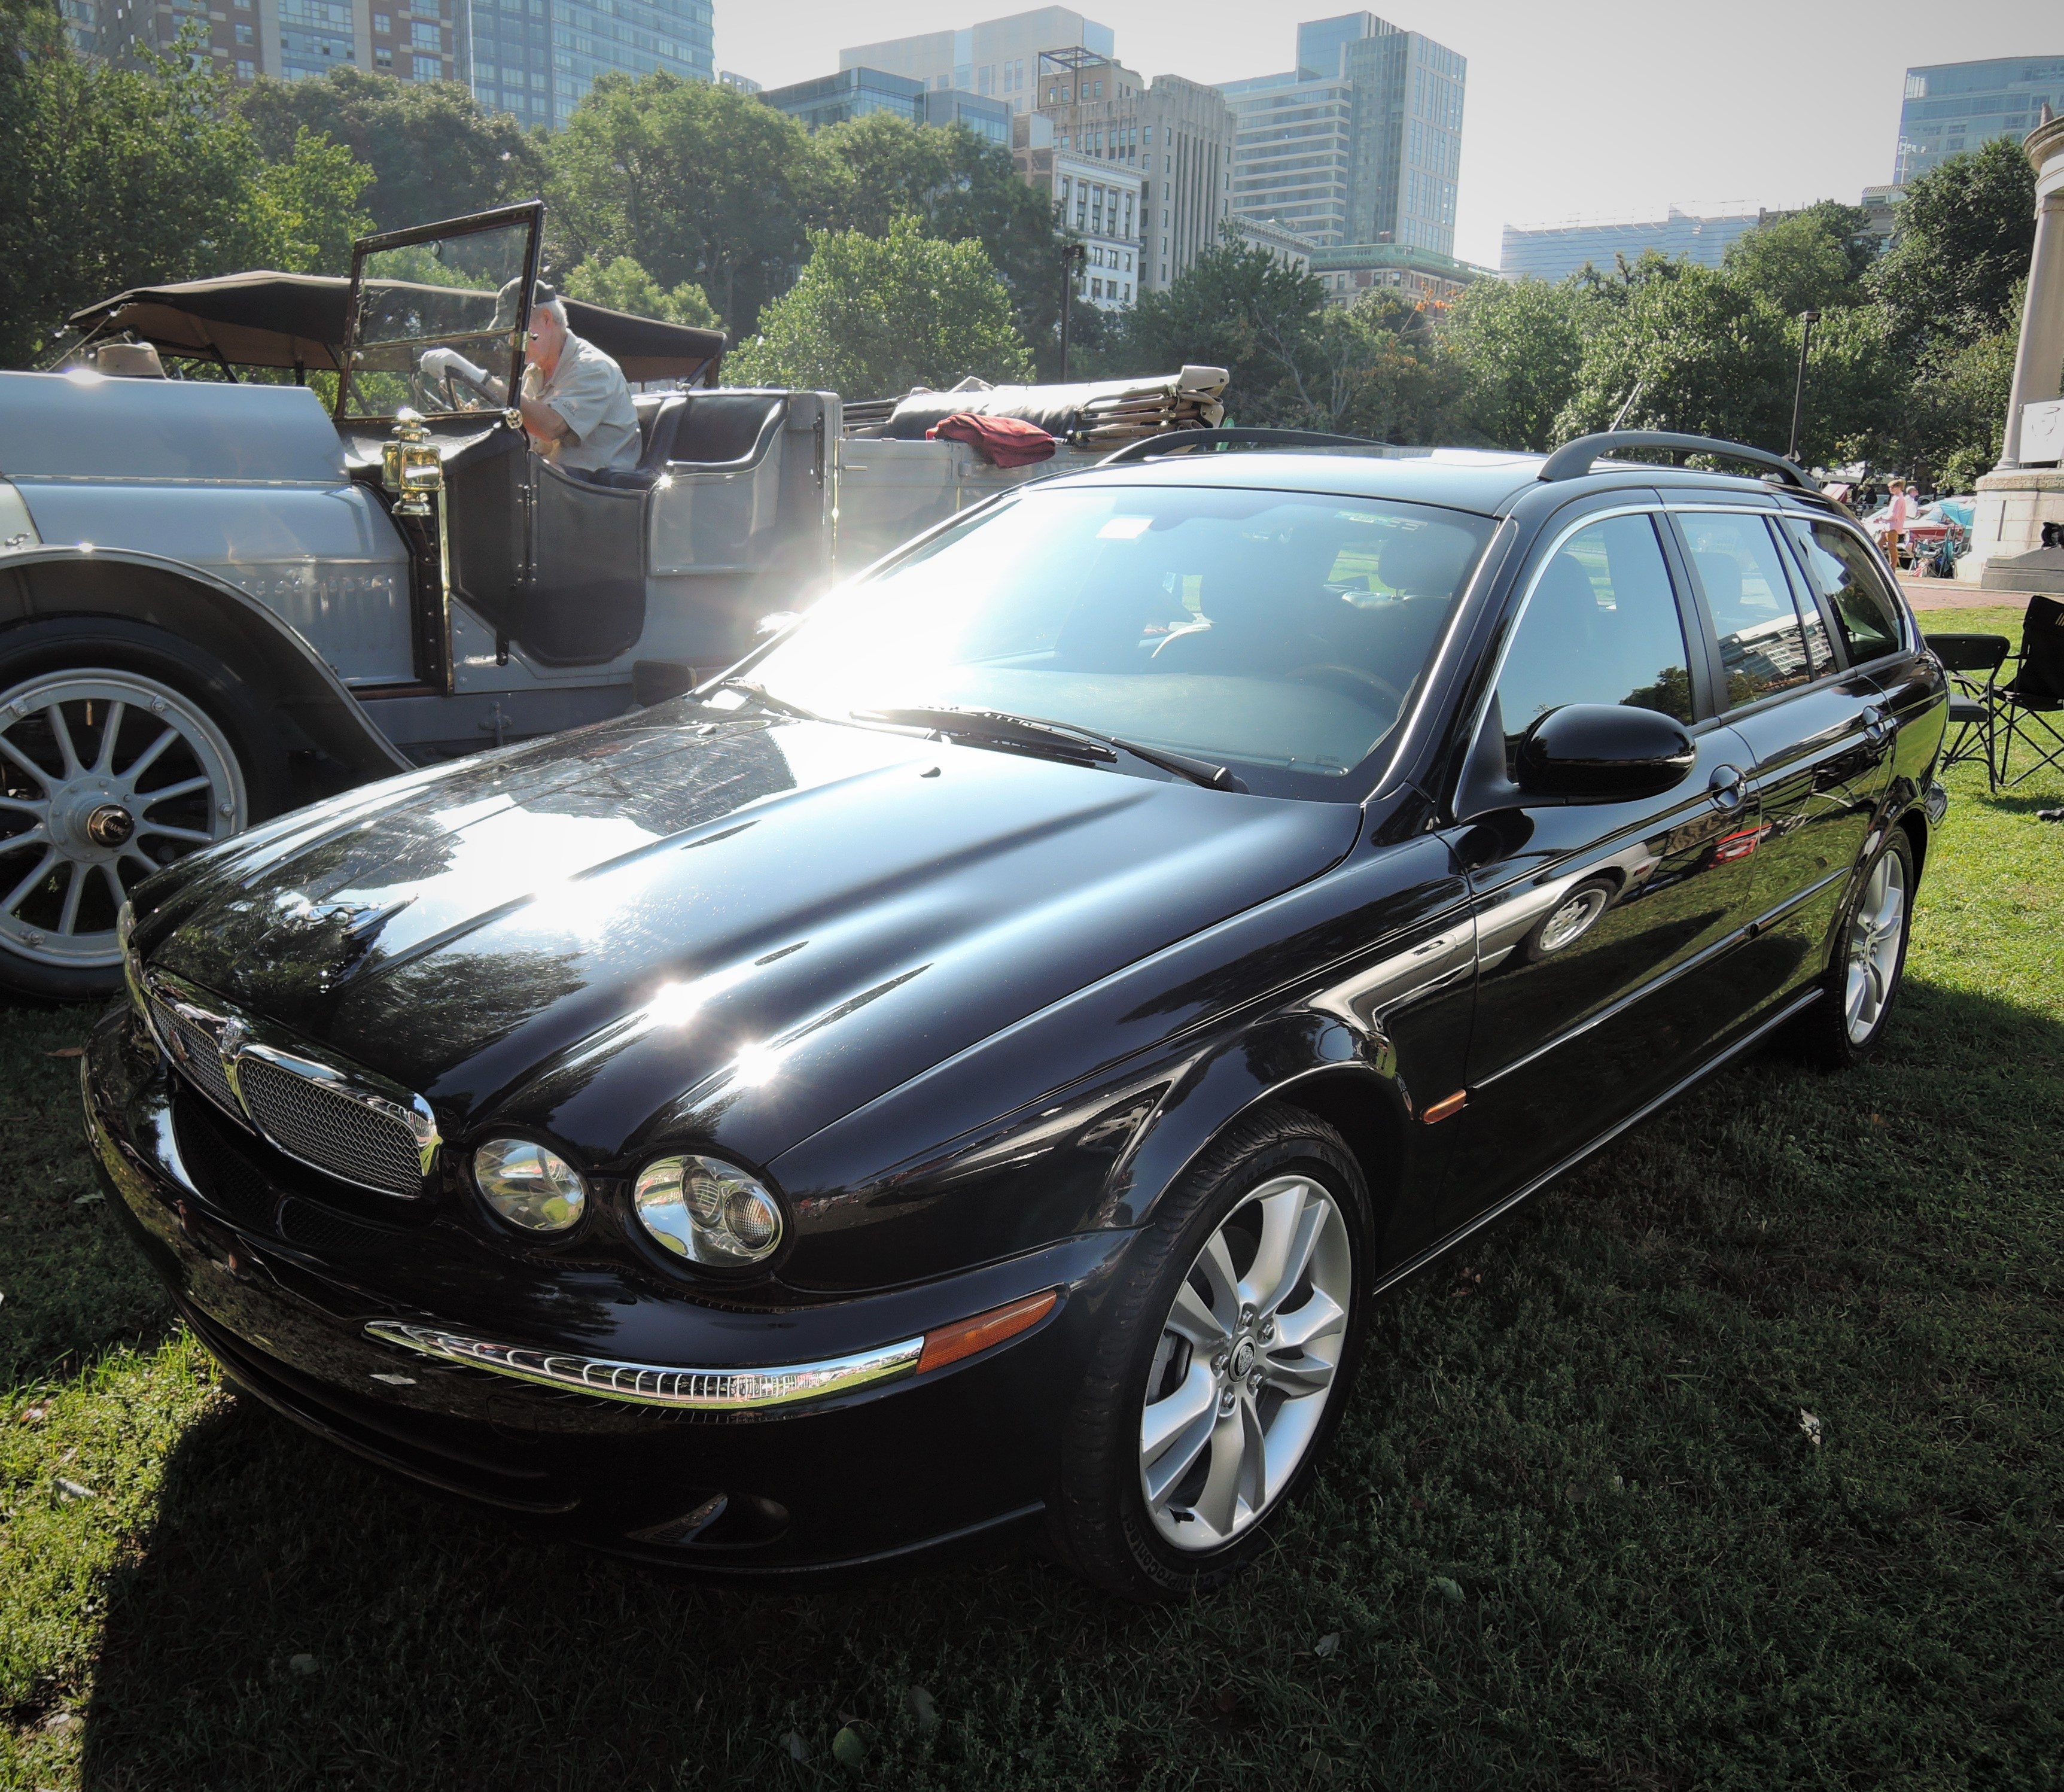 black 2007 Jaguar Estate Wagon - The Boston Cup 2017